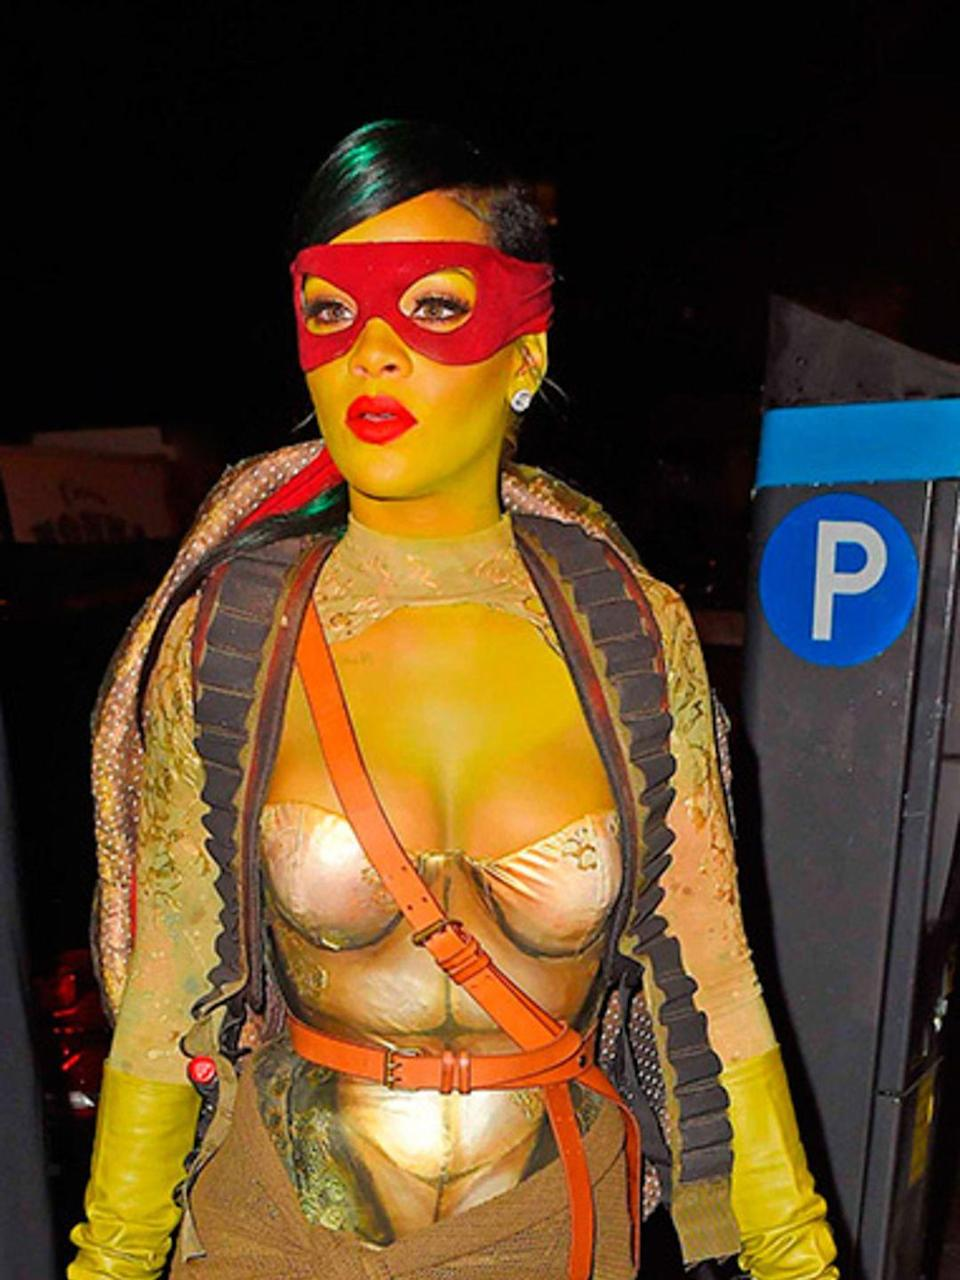 <p>Rihanna dresses up as a Teenage Mutant Ninja Turtle for Halloween in New York, October 2014.</p>